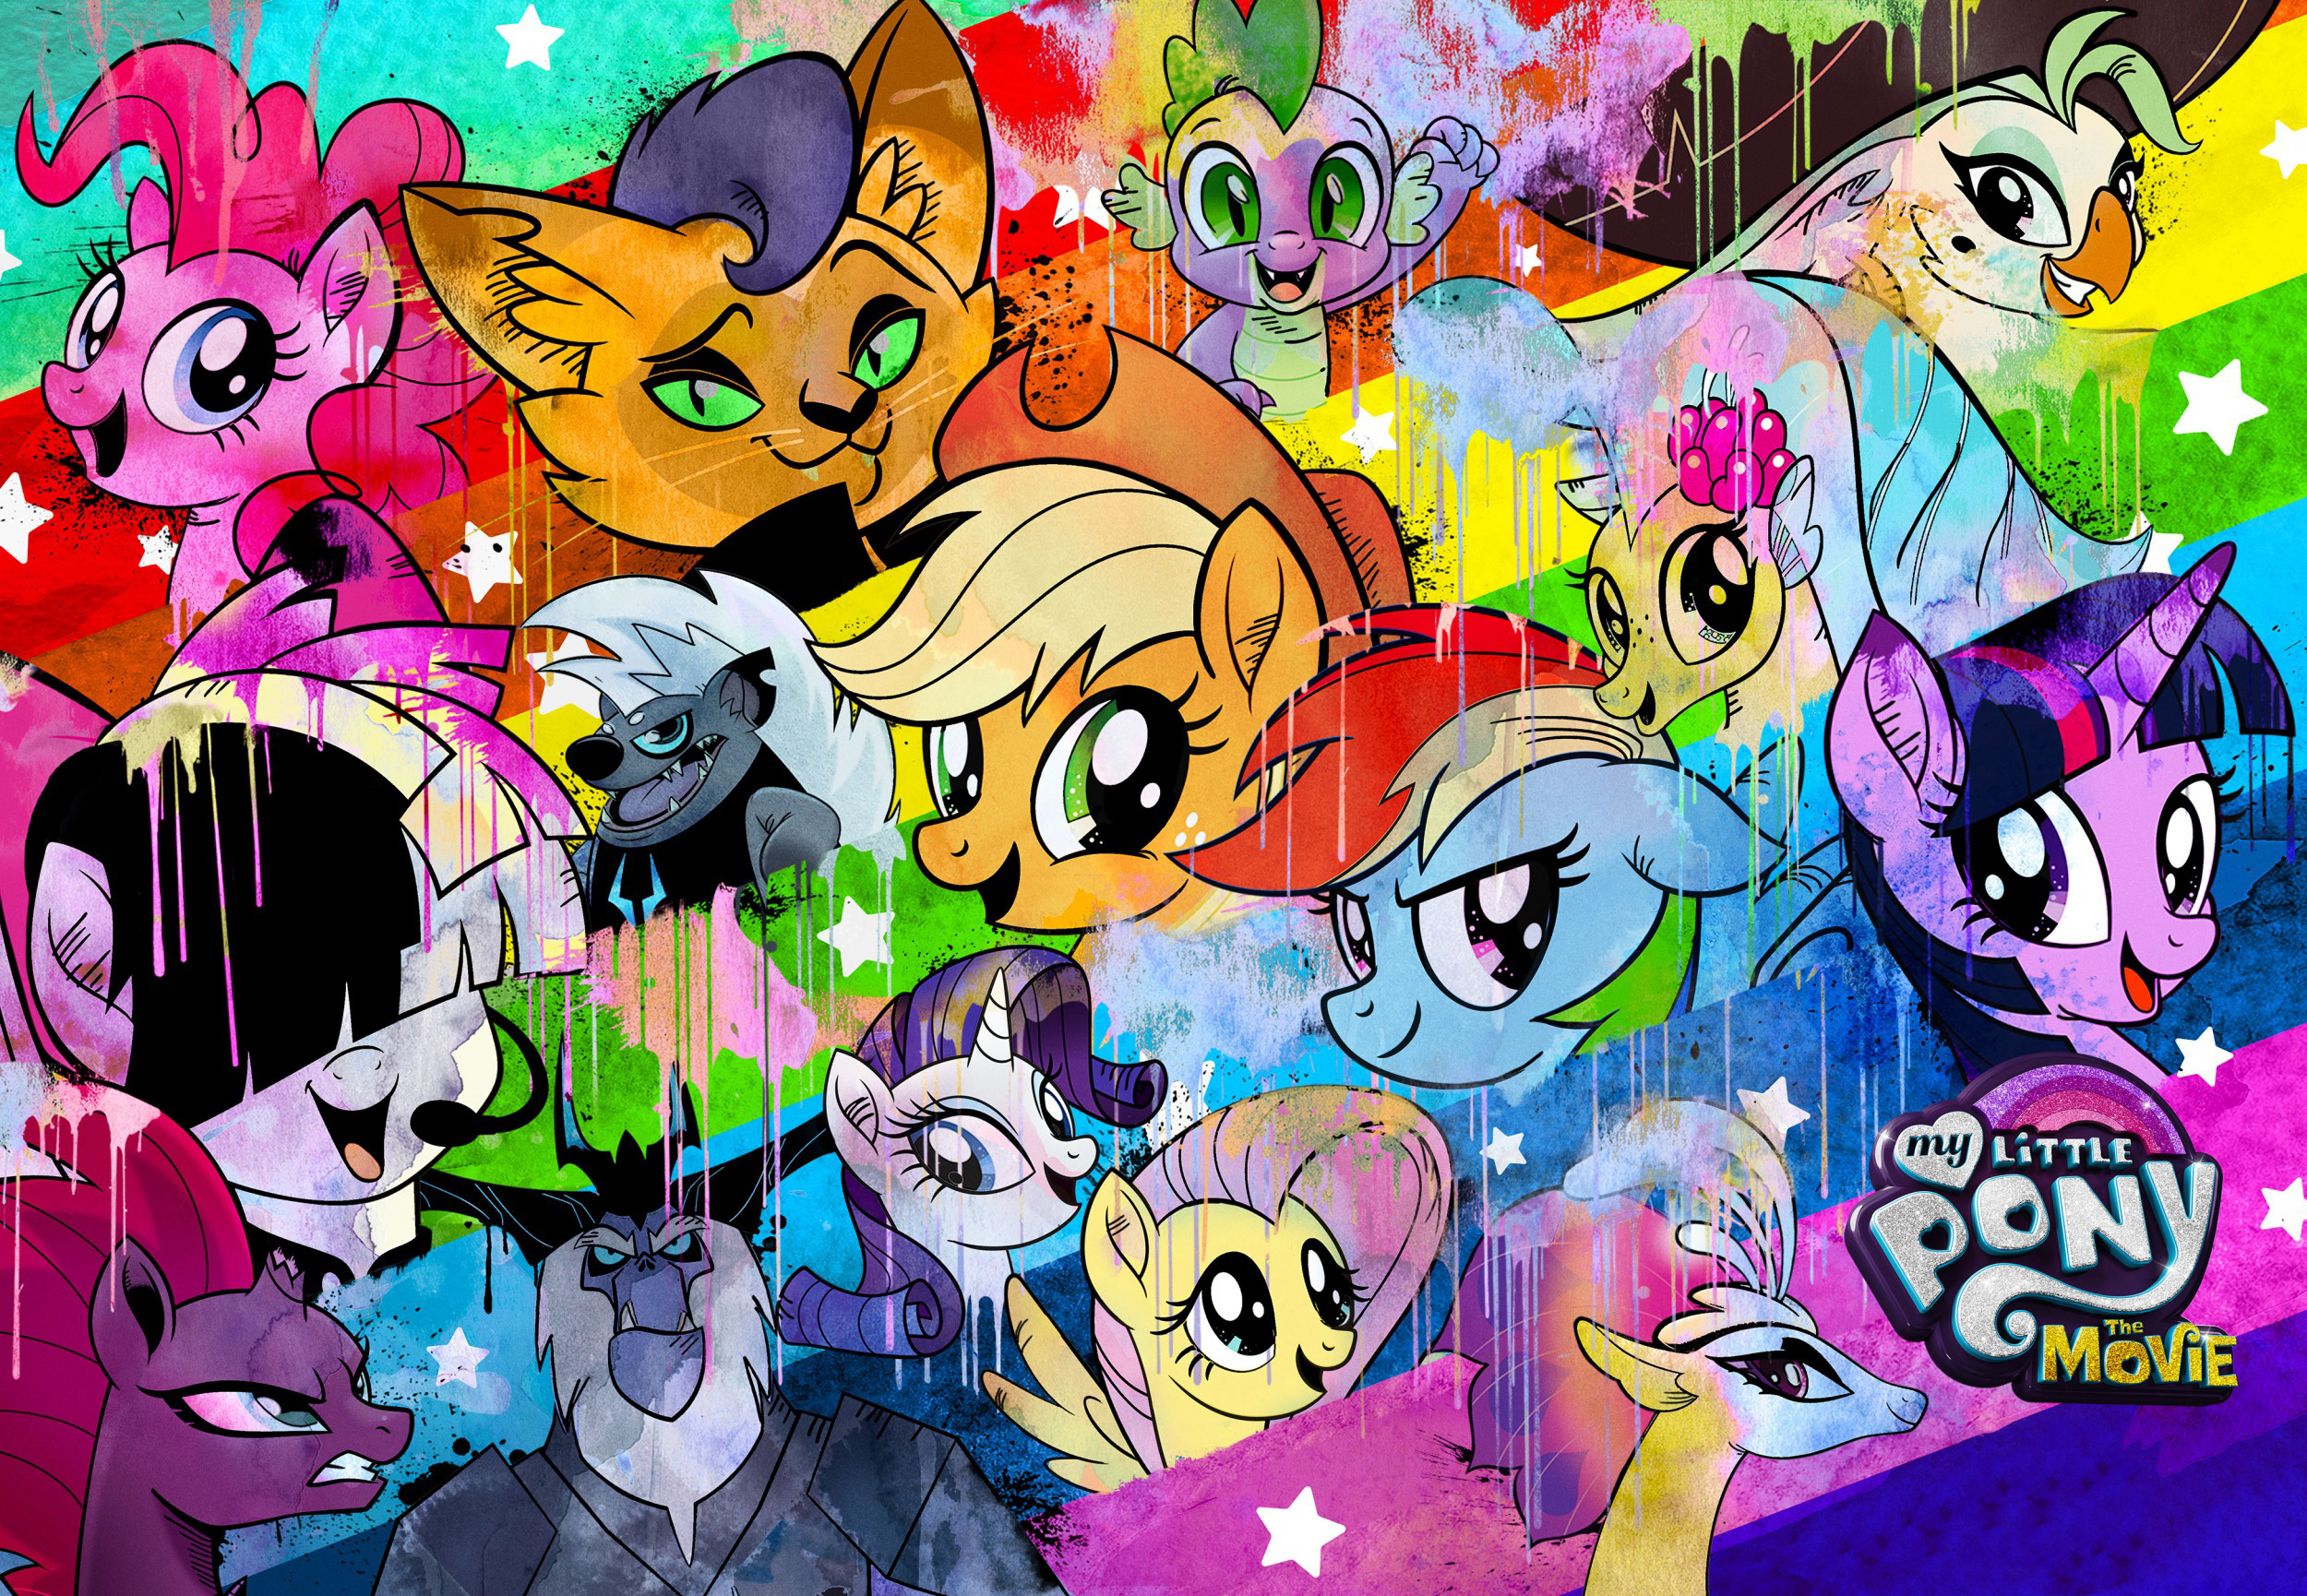 320x480 my little pony movie apple iphone,ipod touch,galaxy ace hd